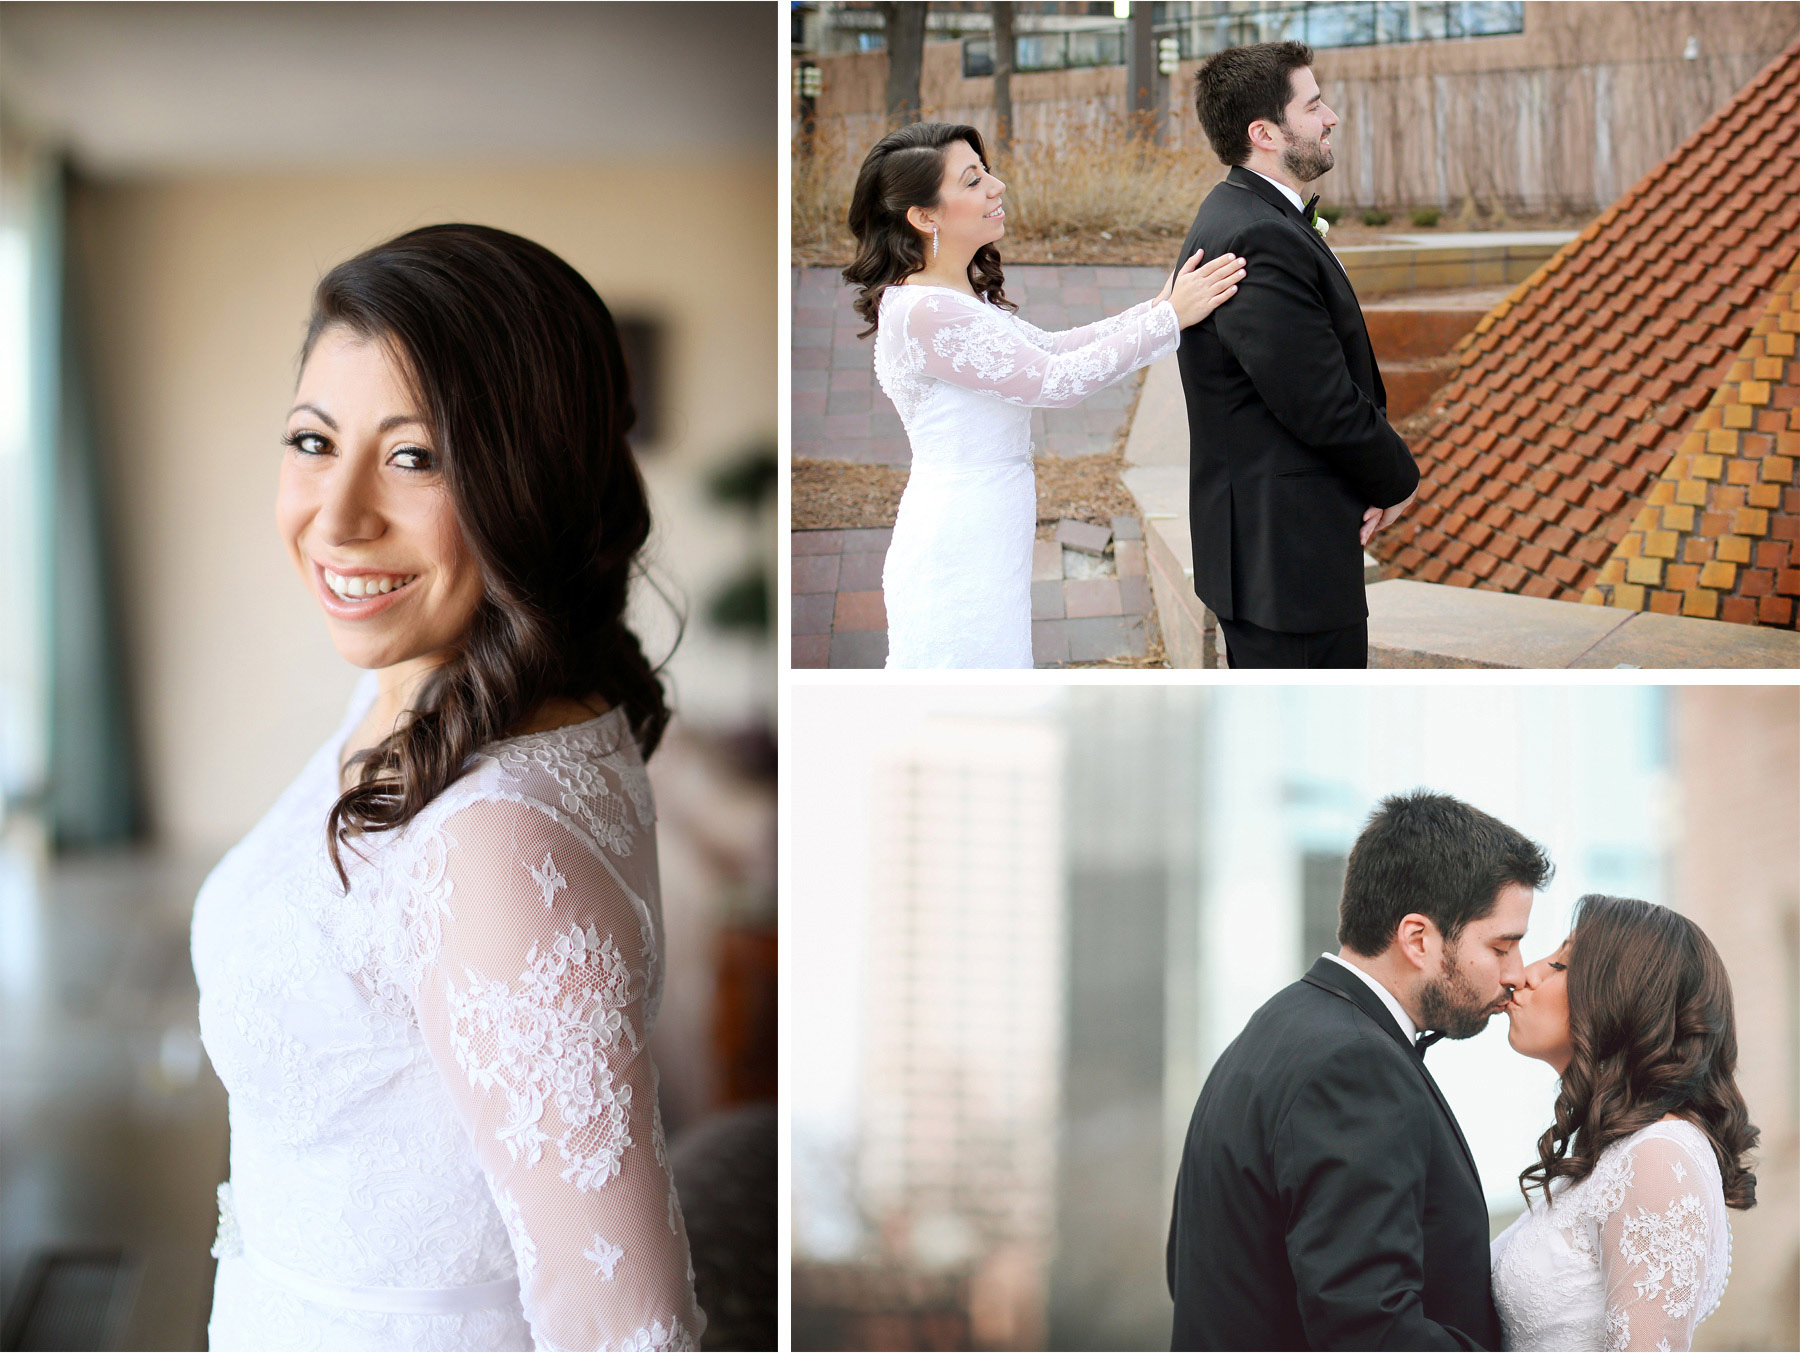 04-Minneapolis-Minnesota-Wedding-Photographer-by-Andrew-Vick-Photography-Winter-Millennium-Hotel-First-Meeting-Look-Bride-Groom-Dress-Lace-Kiss-Vintage-Amy-and-Jordan.jpg